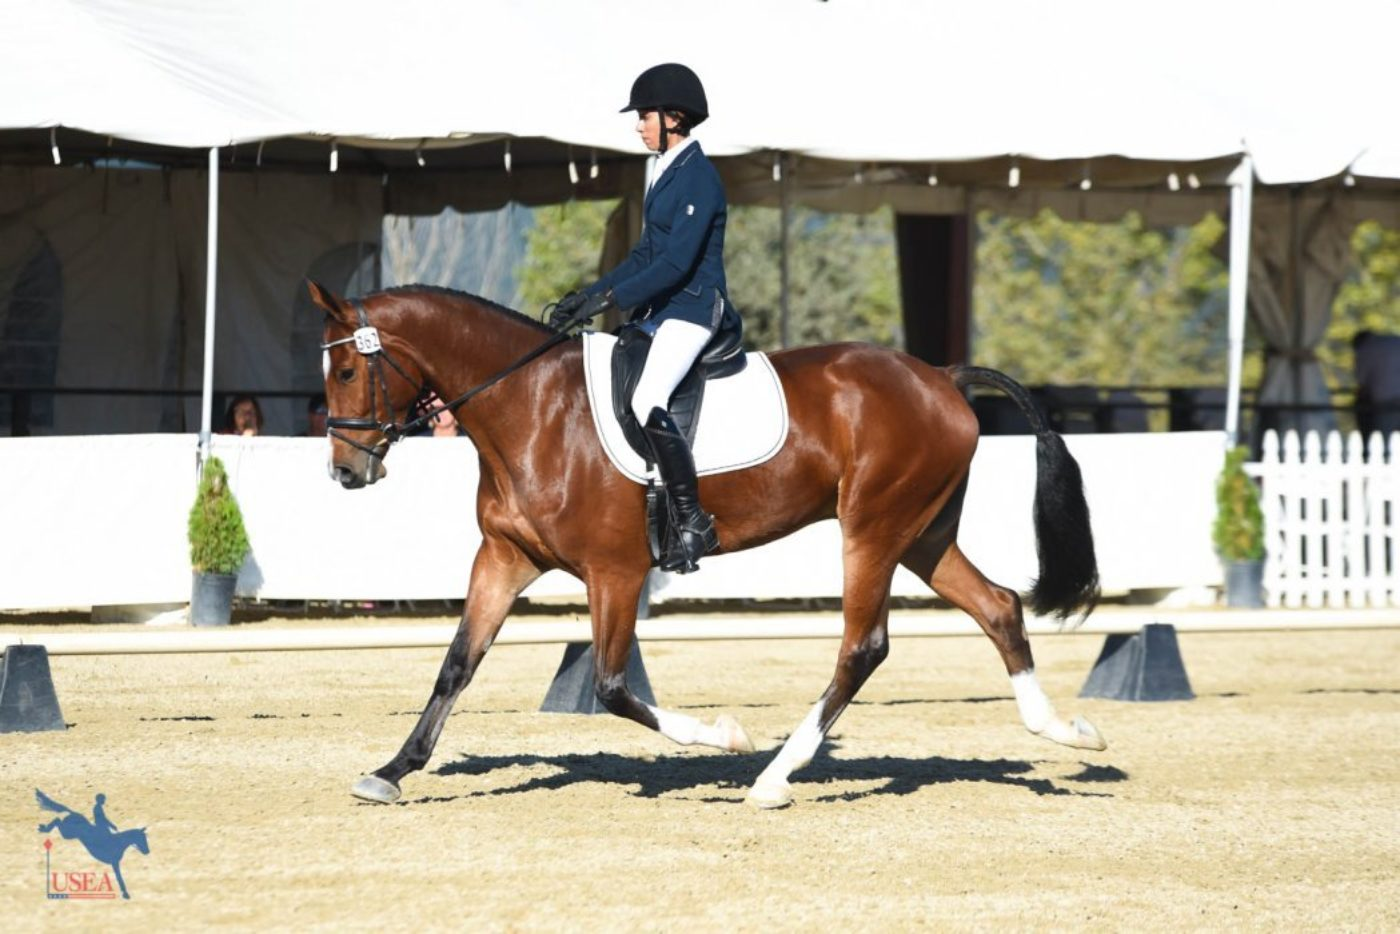 2nd YEH-4 - Nicole Carroll and CrissCross PCH - 77.47